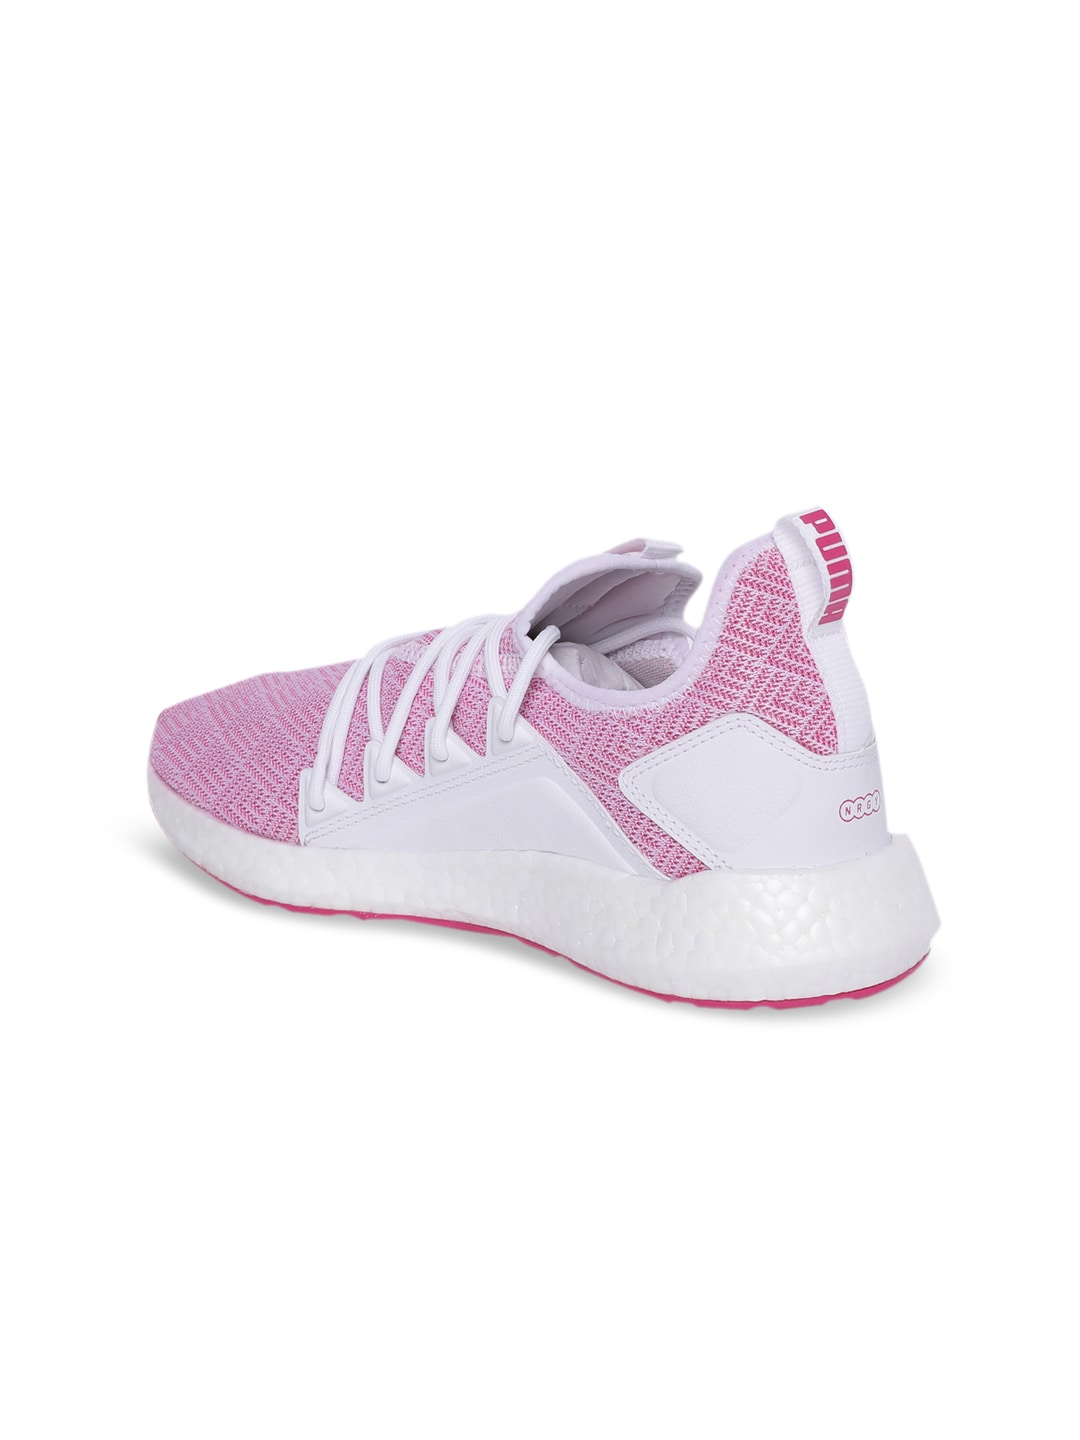 newest f068a e9796 Puma Shoes - Buy Puma Shoes for Men   Women Online in India